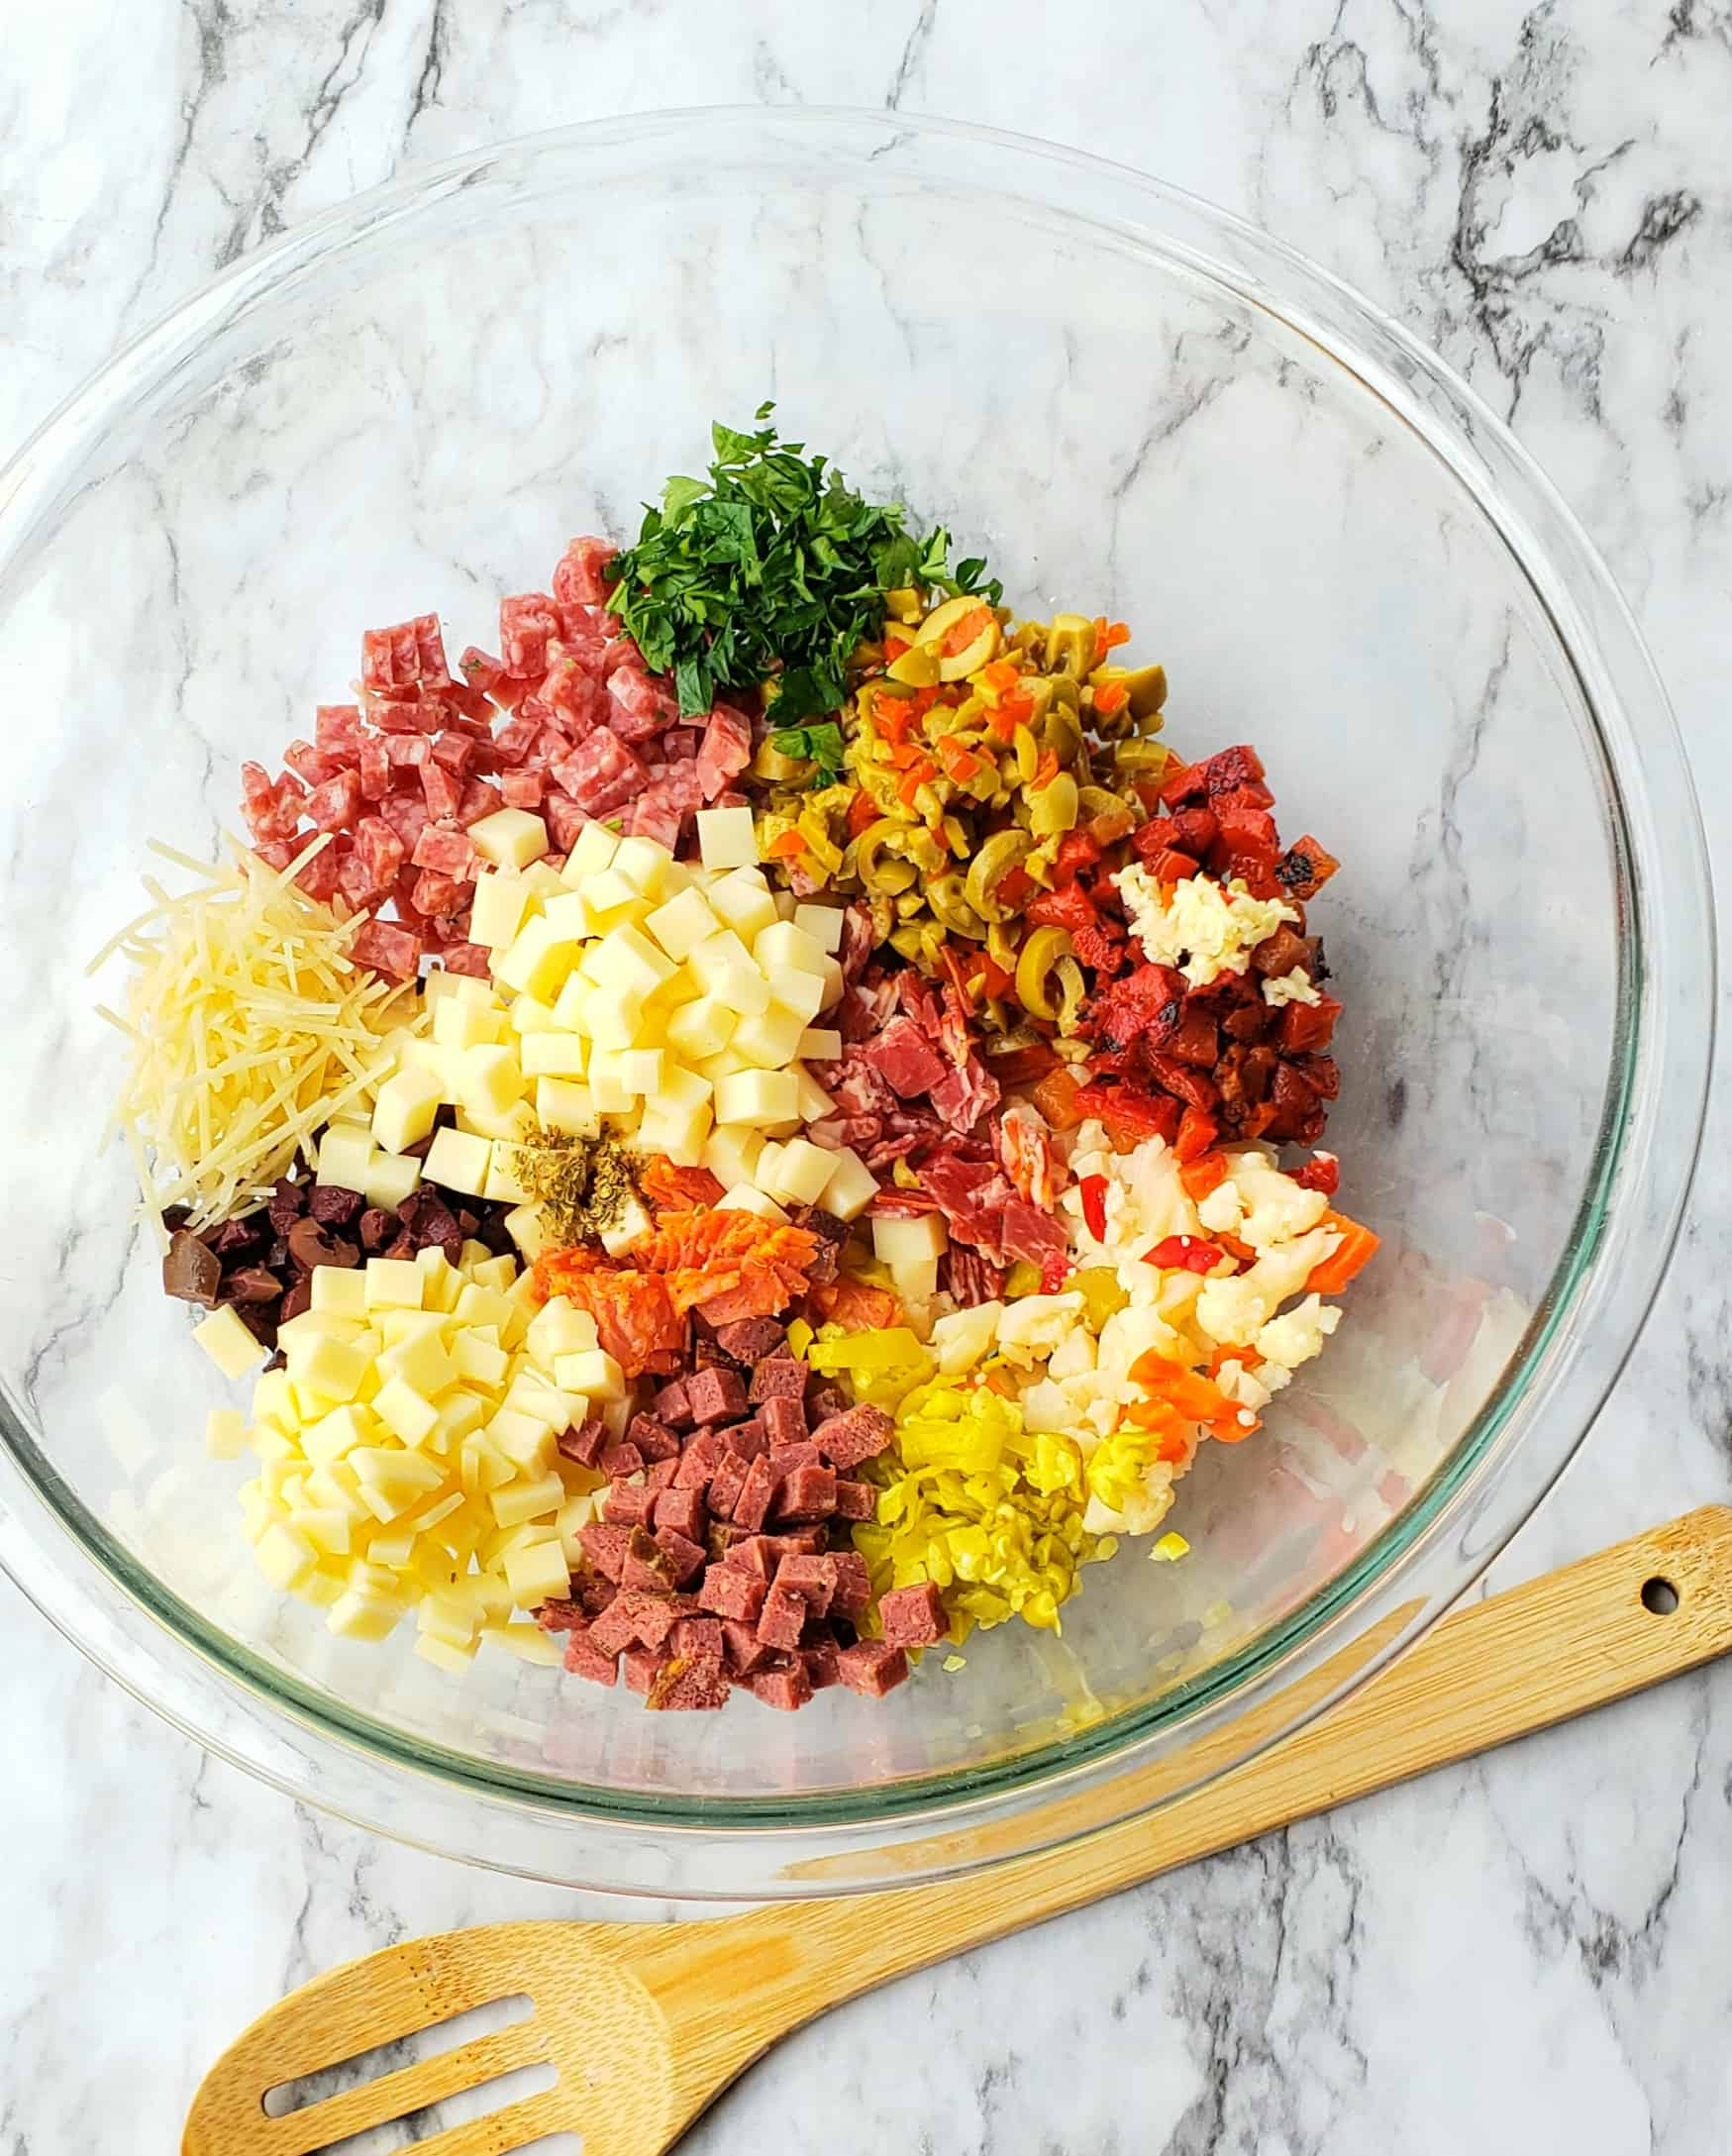 Finely chop the pickled veggies, olives, peppers. Mince the garlic and parsley. Dice the cheeses and meats.